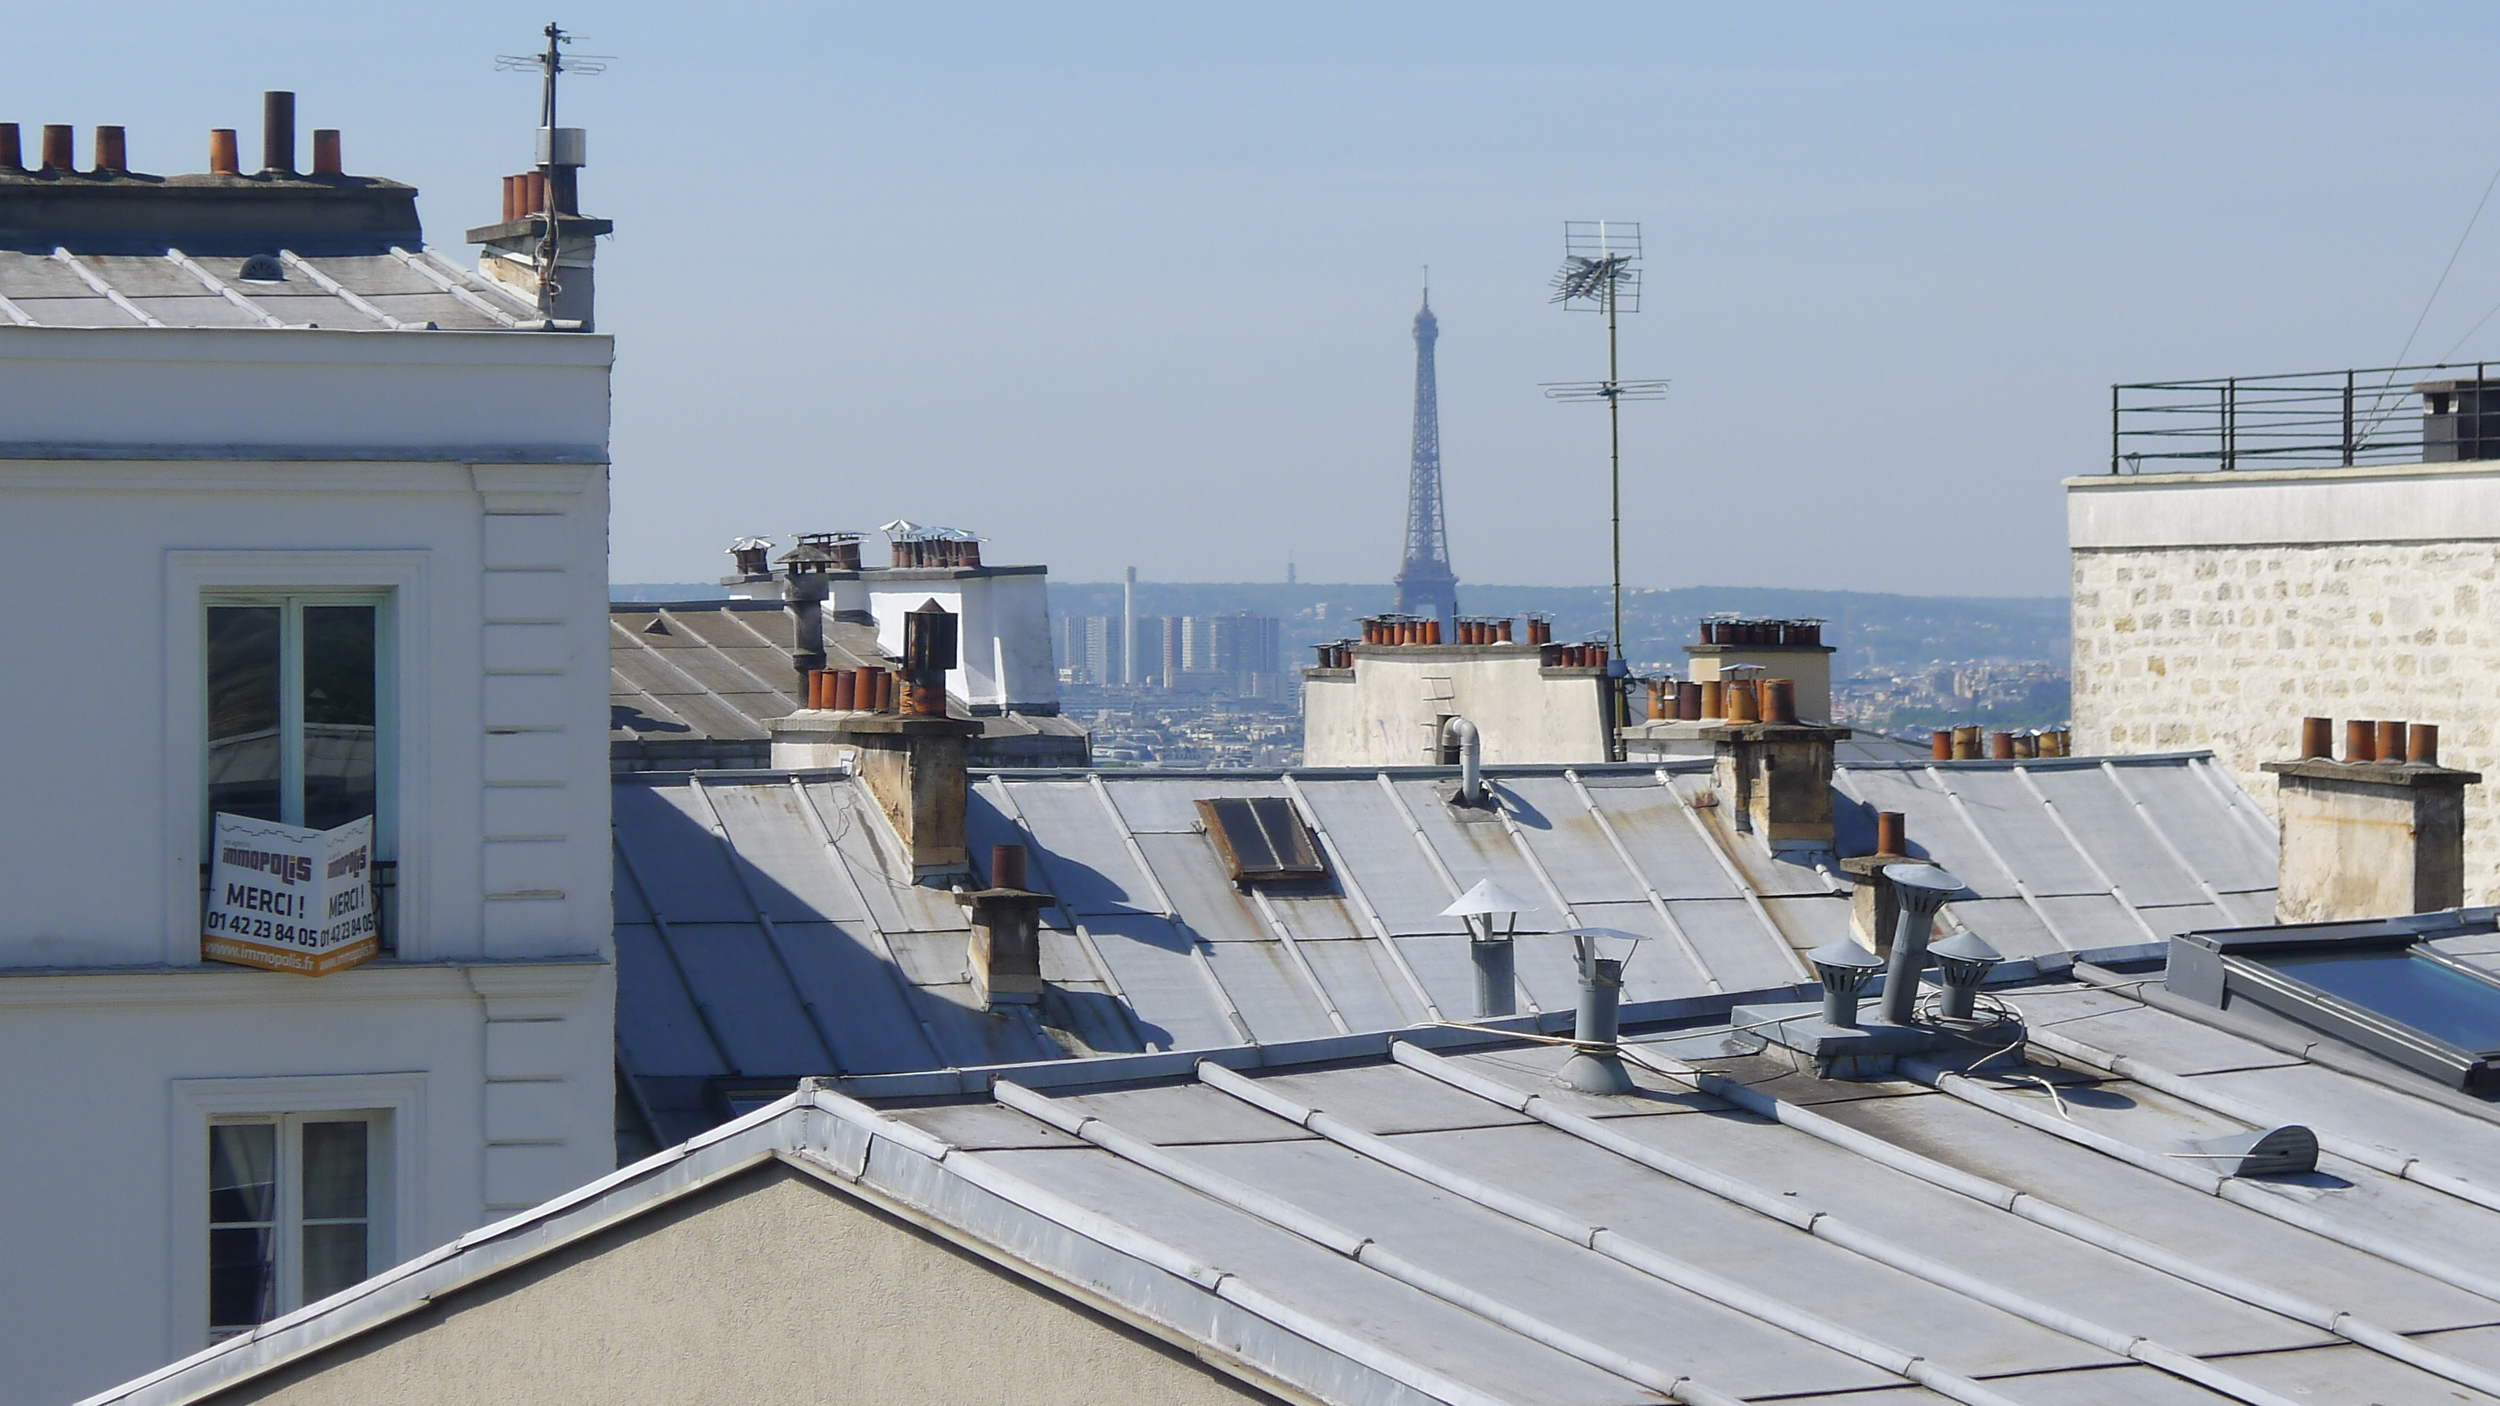 The rooftops at Monmartre